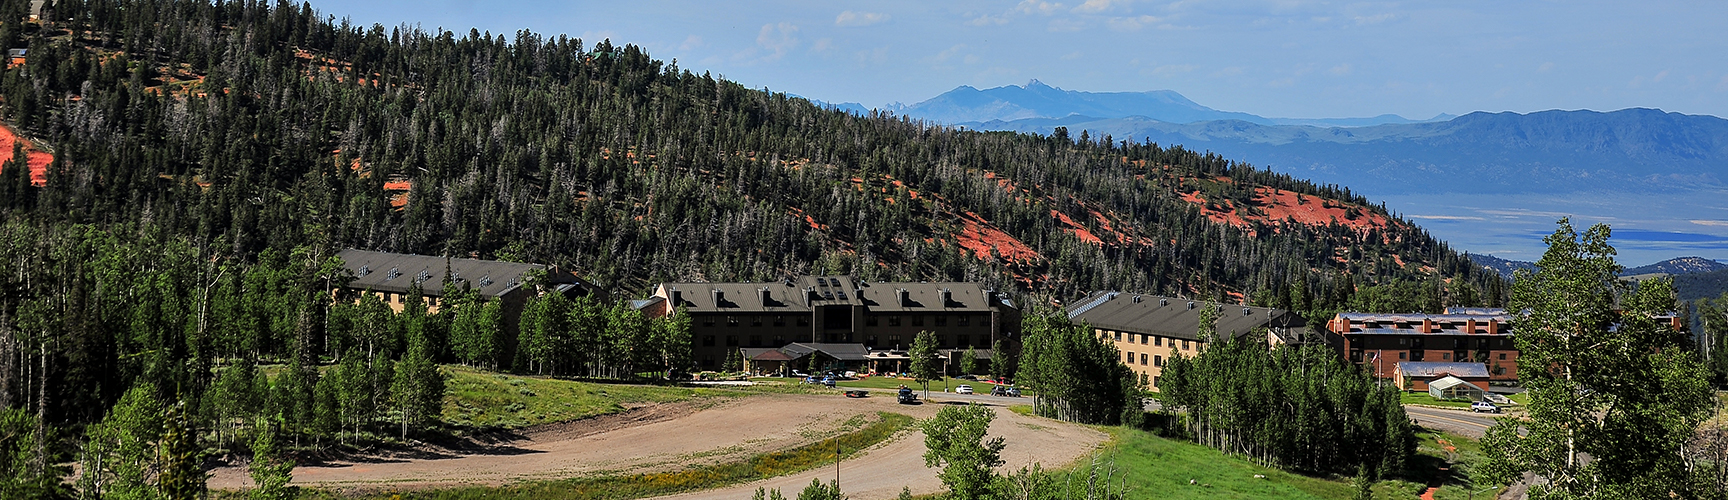 A view of Cedar Breaks Lodge & Spa surrounded by lush green trees